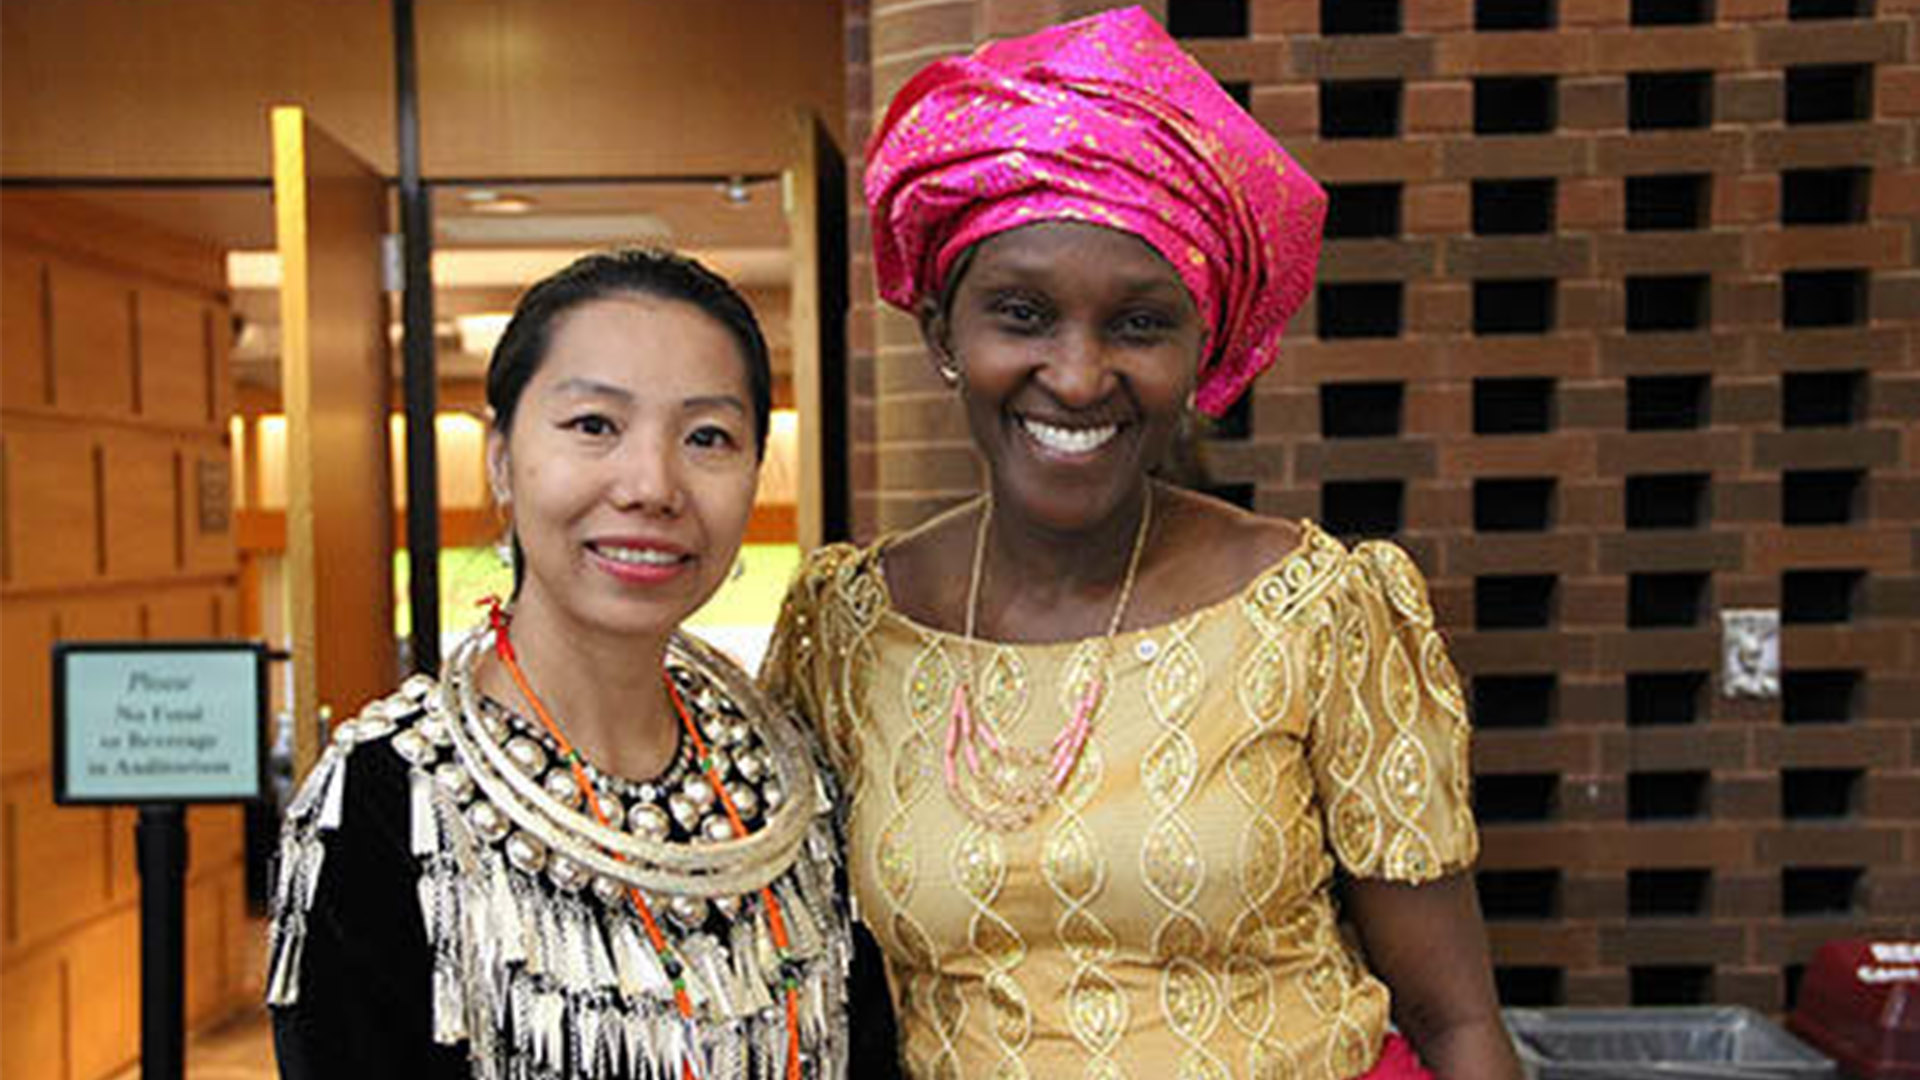 Two Humphrey School International Fellows pose in traditional clothing outside Cowles Auditorium